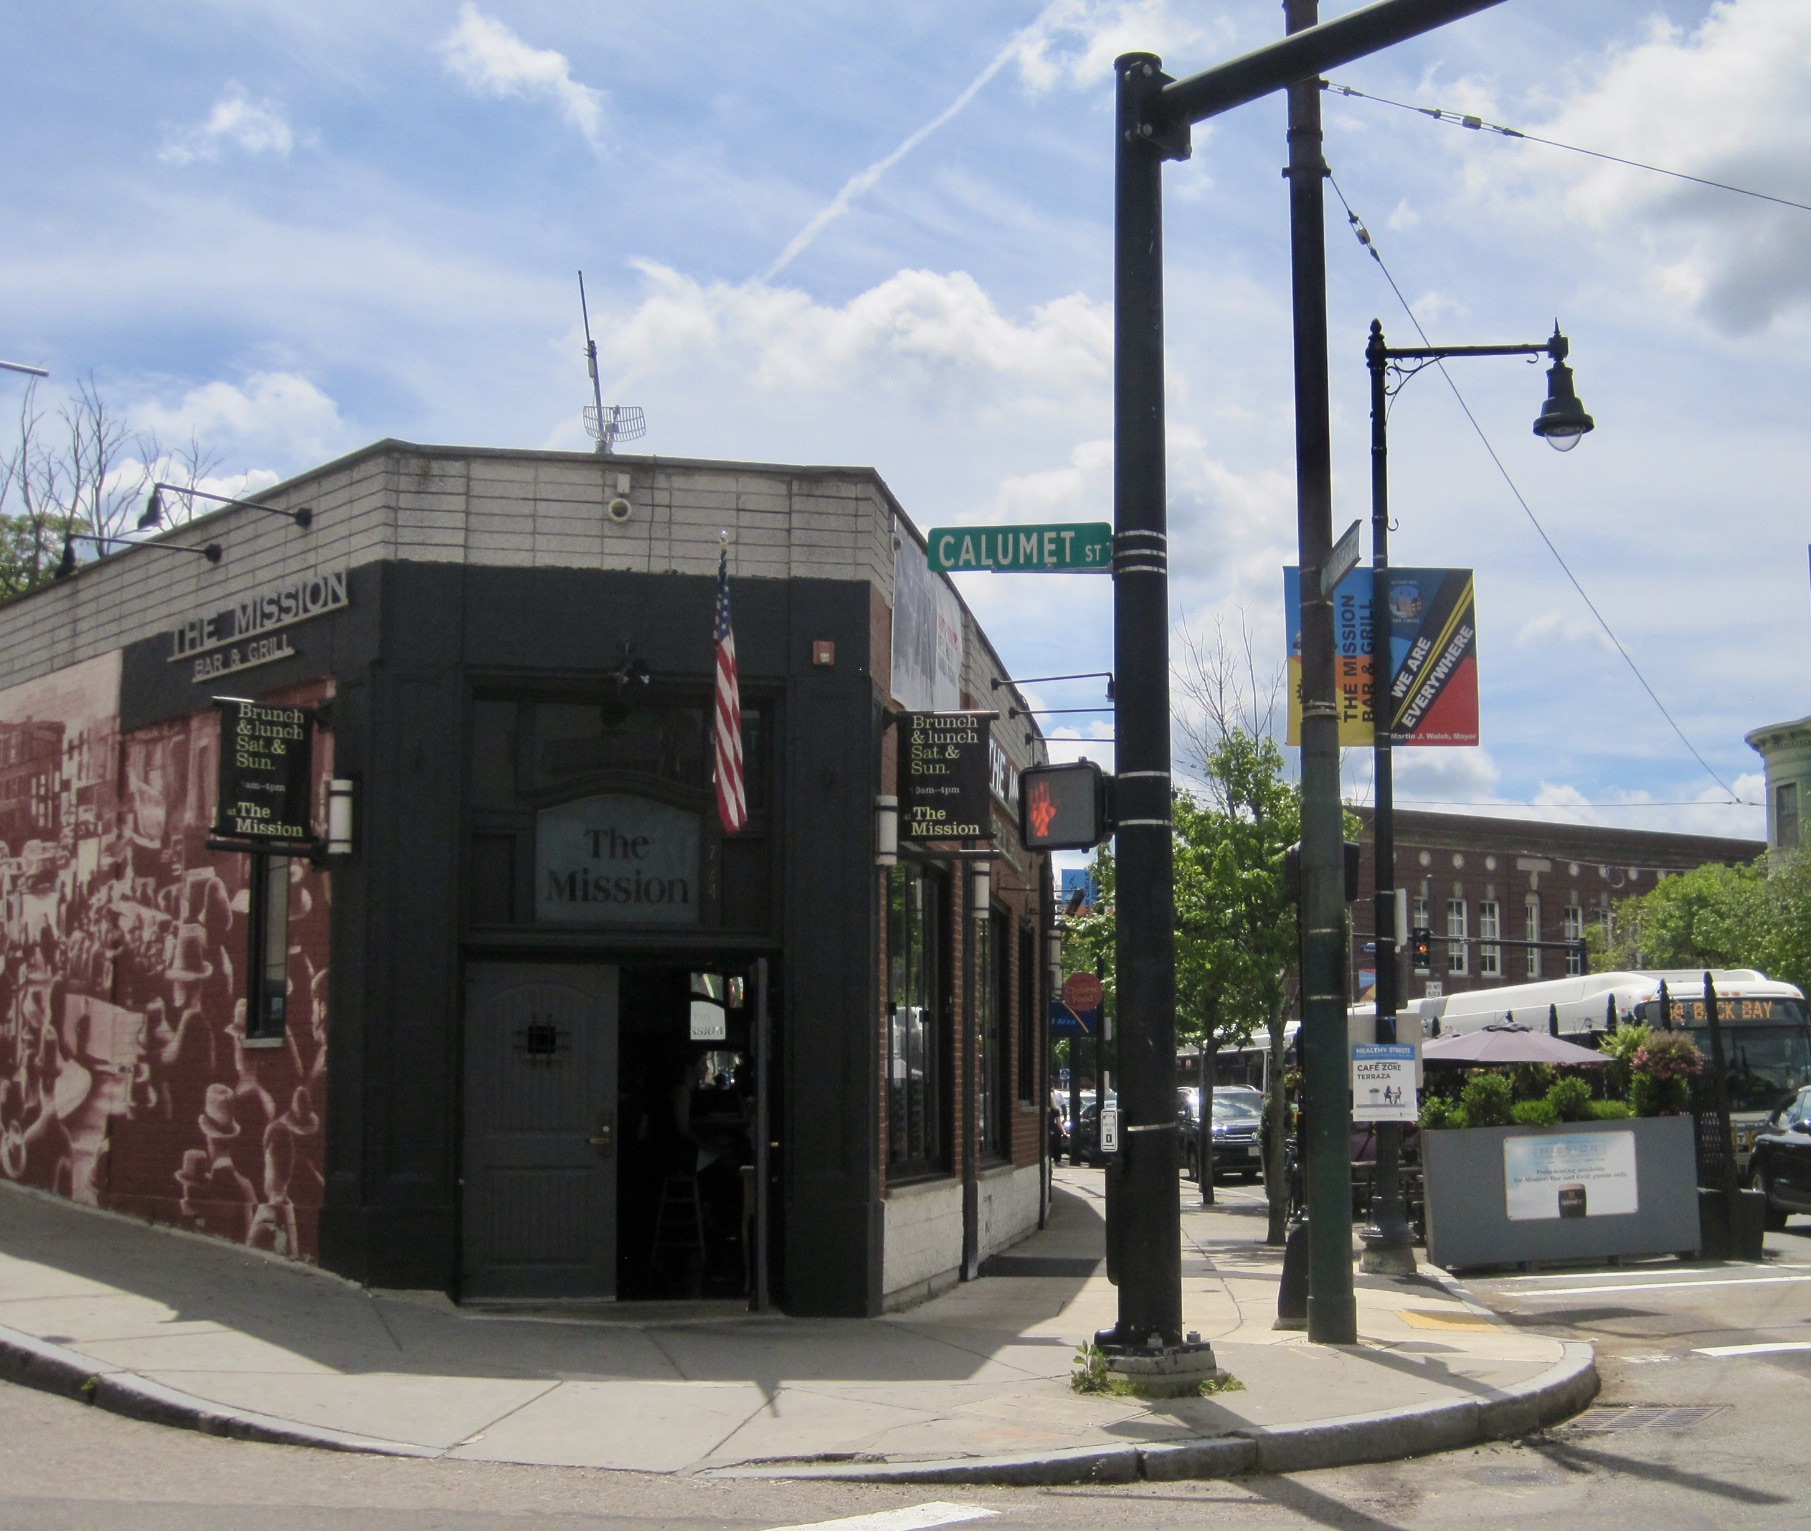 The Mission Bar and Grill on Huntington Ave